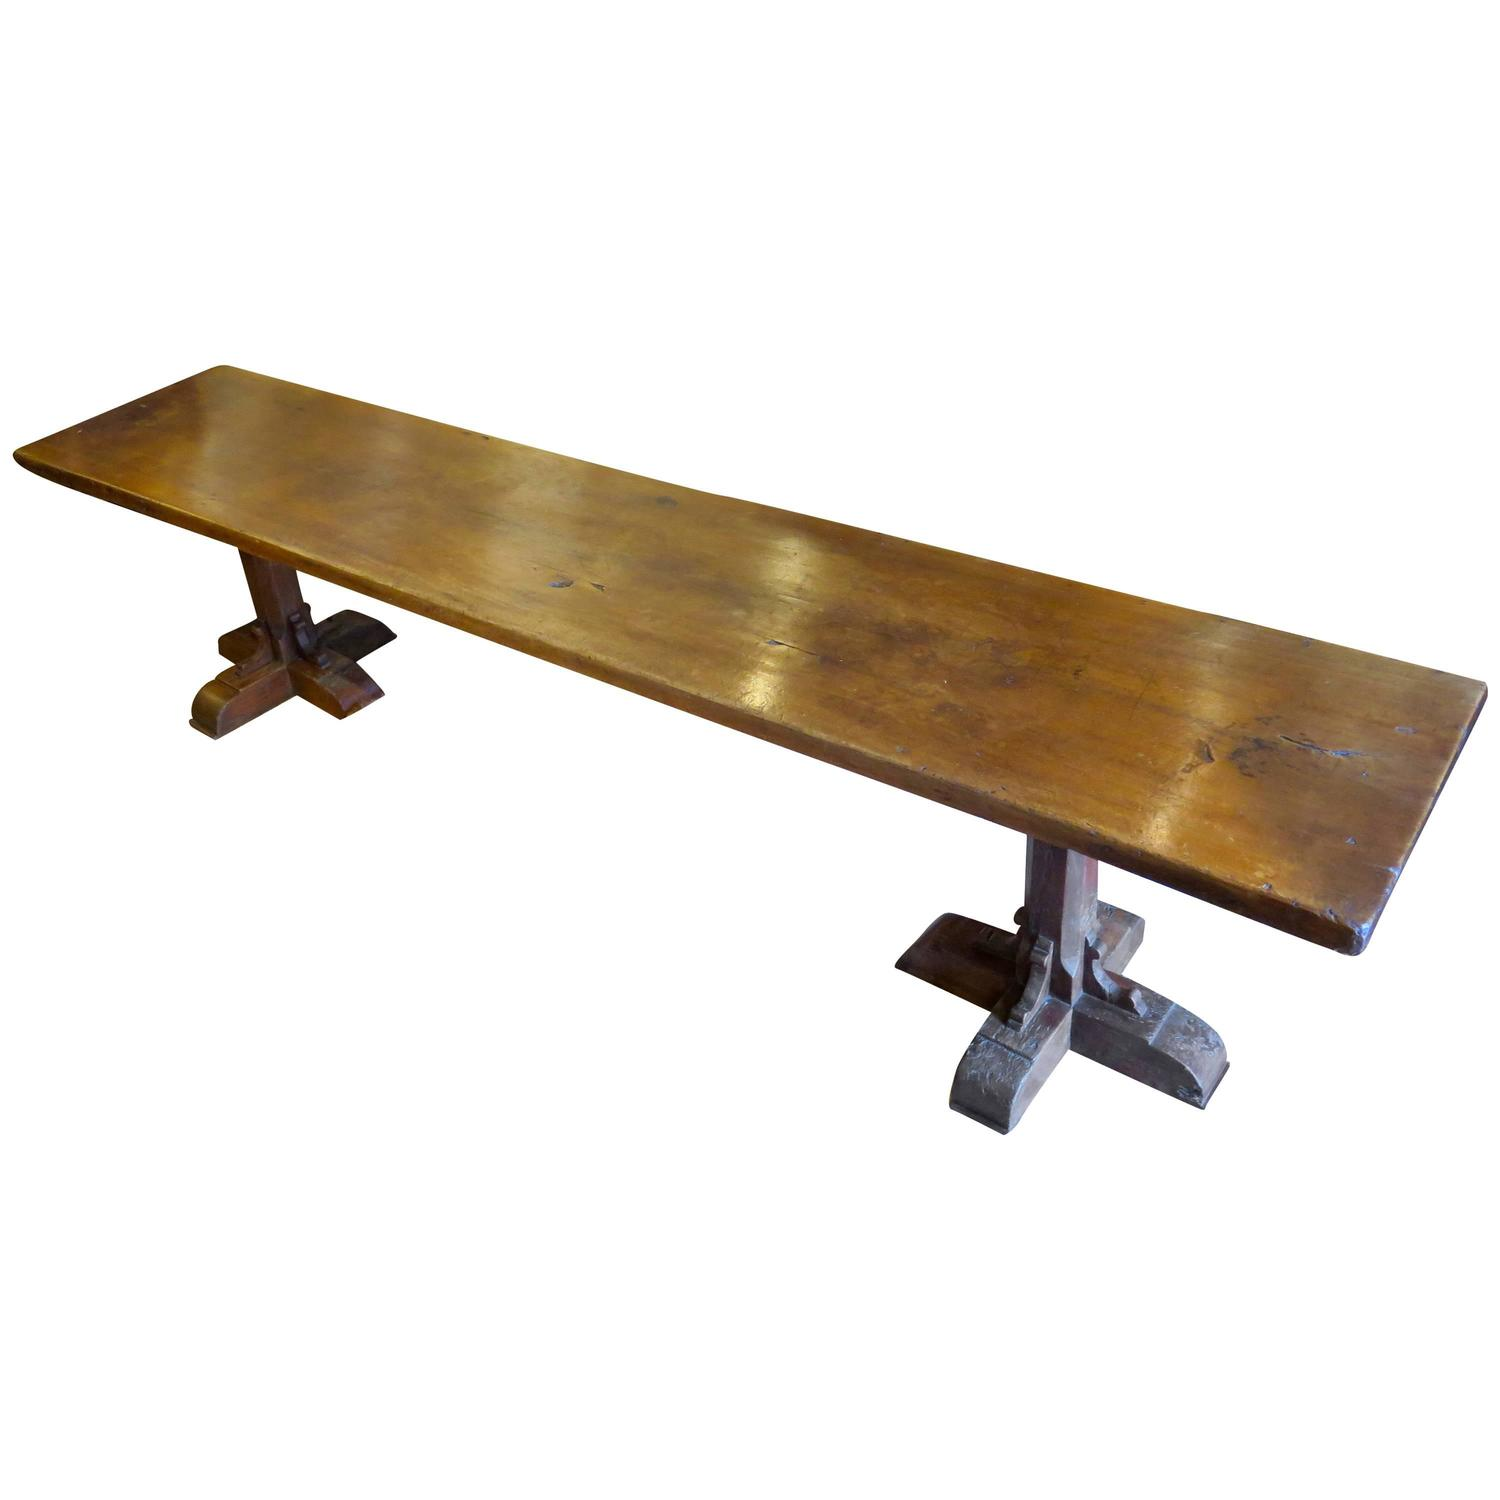 incredible single plank walnut 17th century trestle dining table for